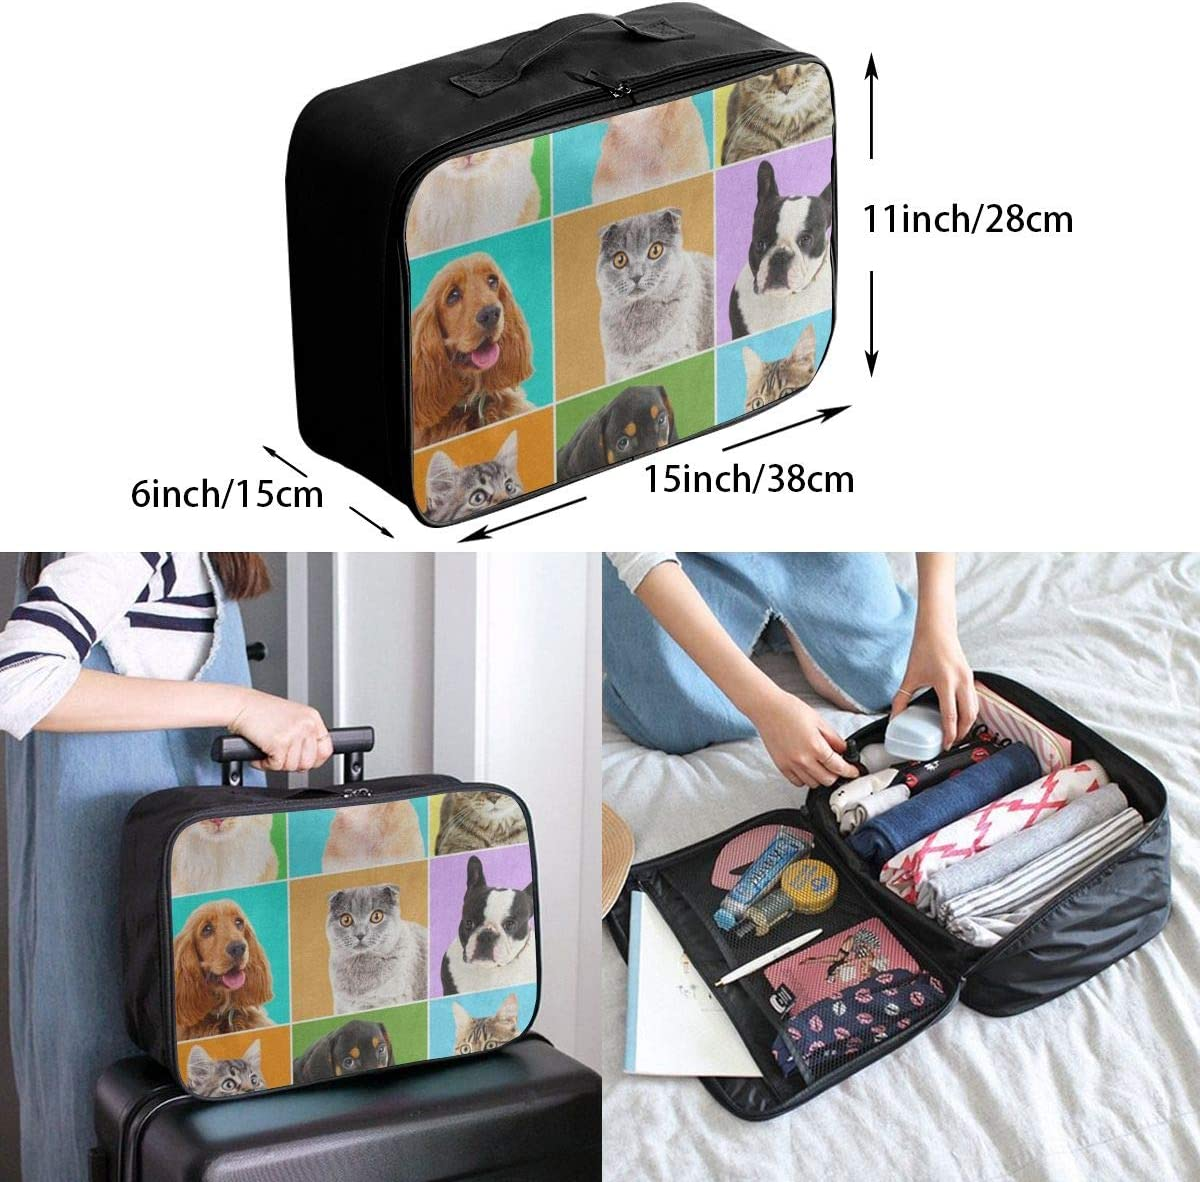 Travel Bags Cute Bulldog Pug Dog Cat Kitten Portable Foldable Great Trolley Handle Luggage Bag